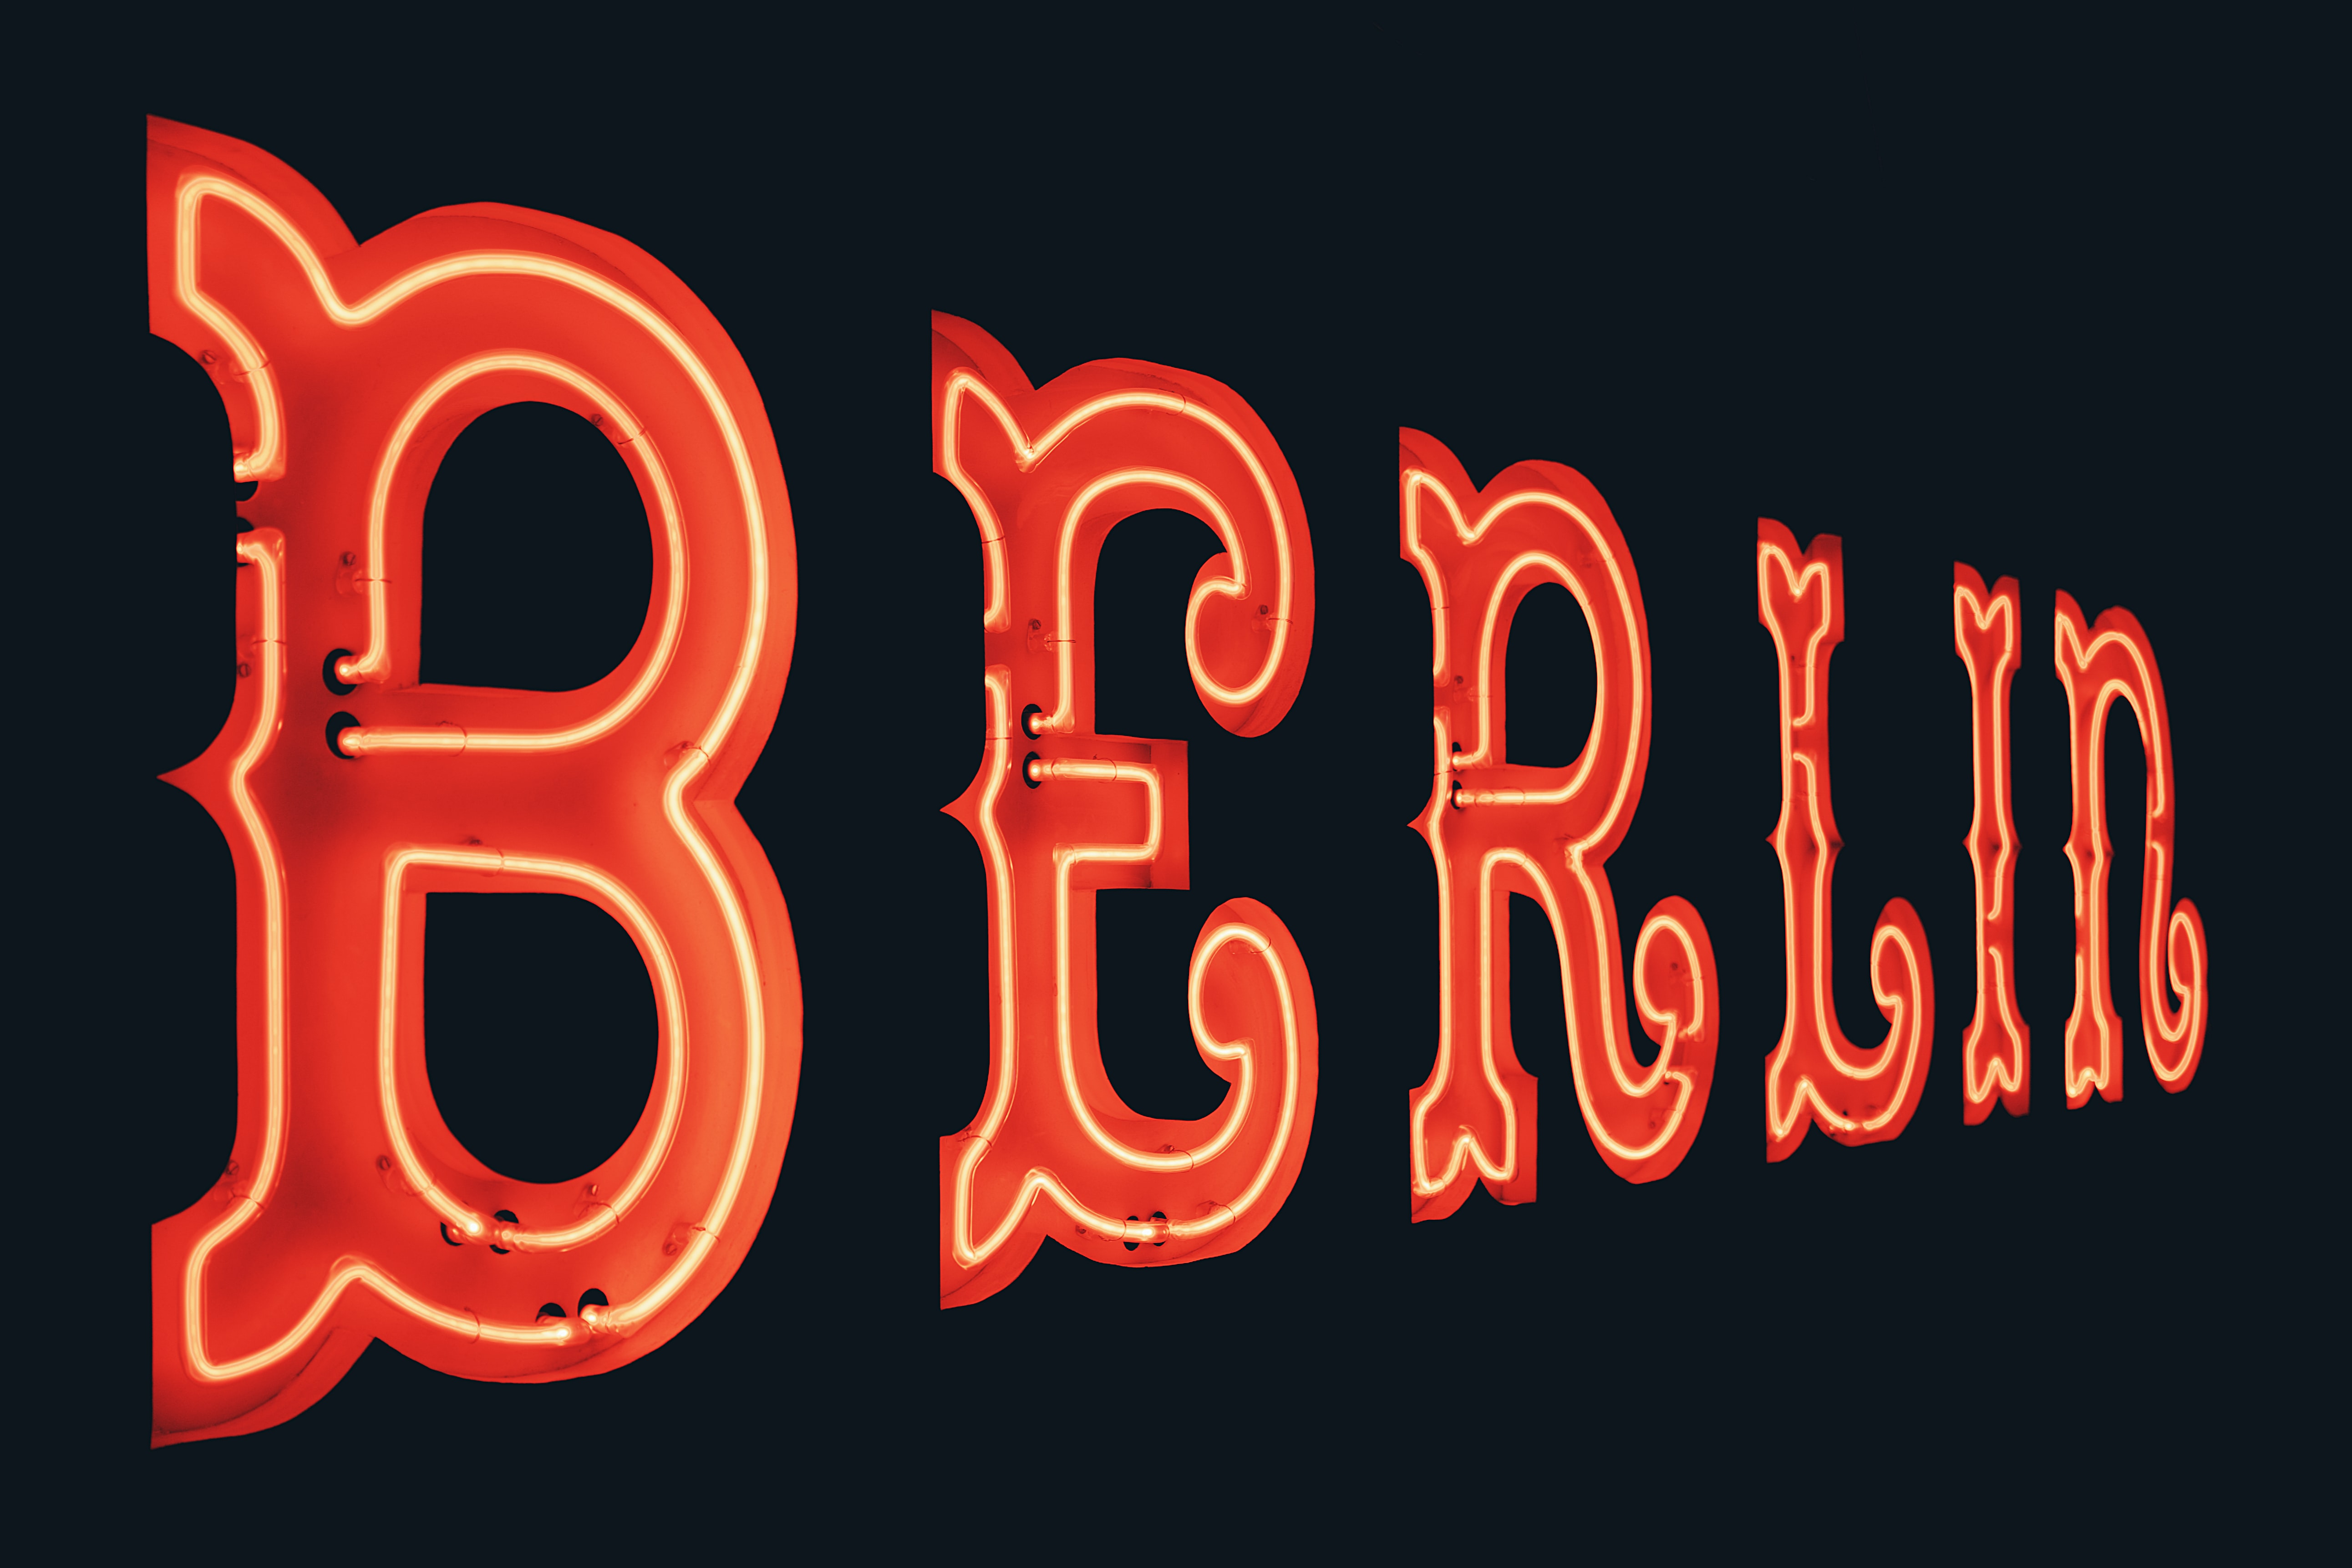 turned on red Berlin neon signage